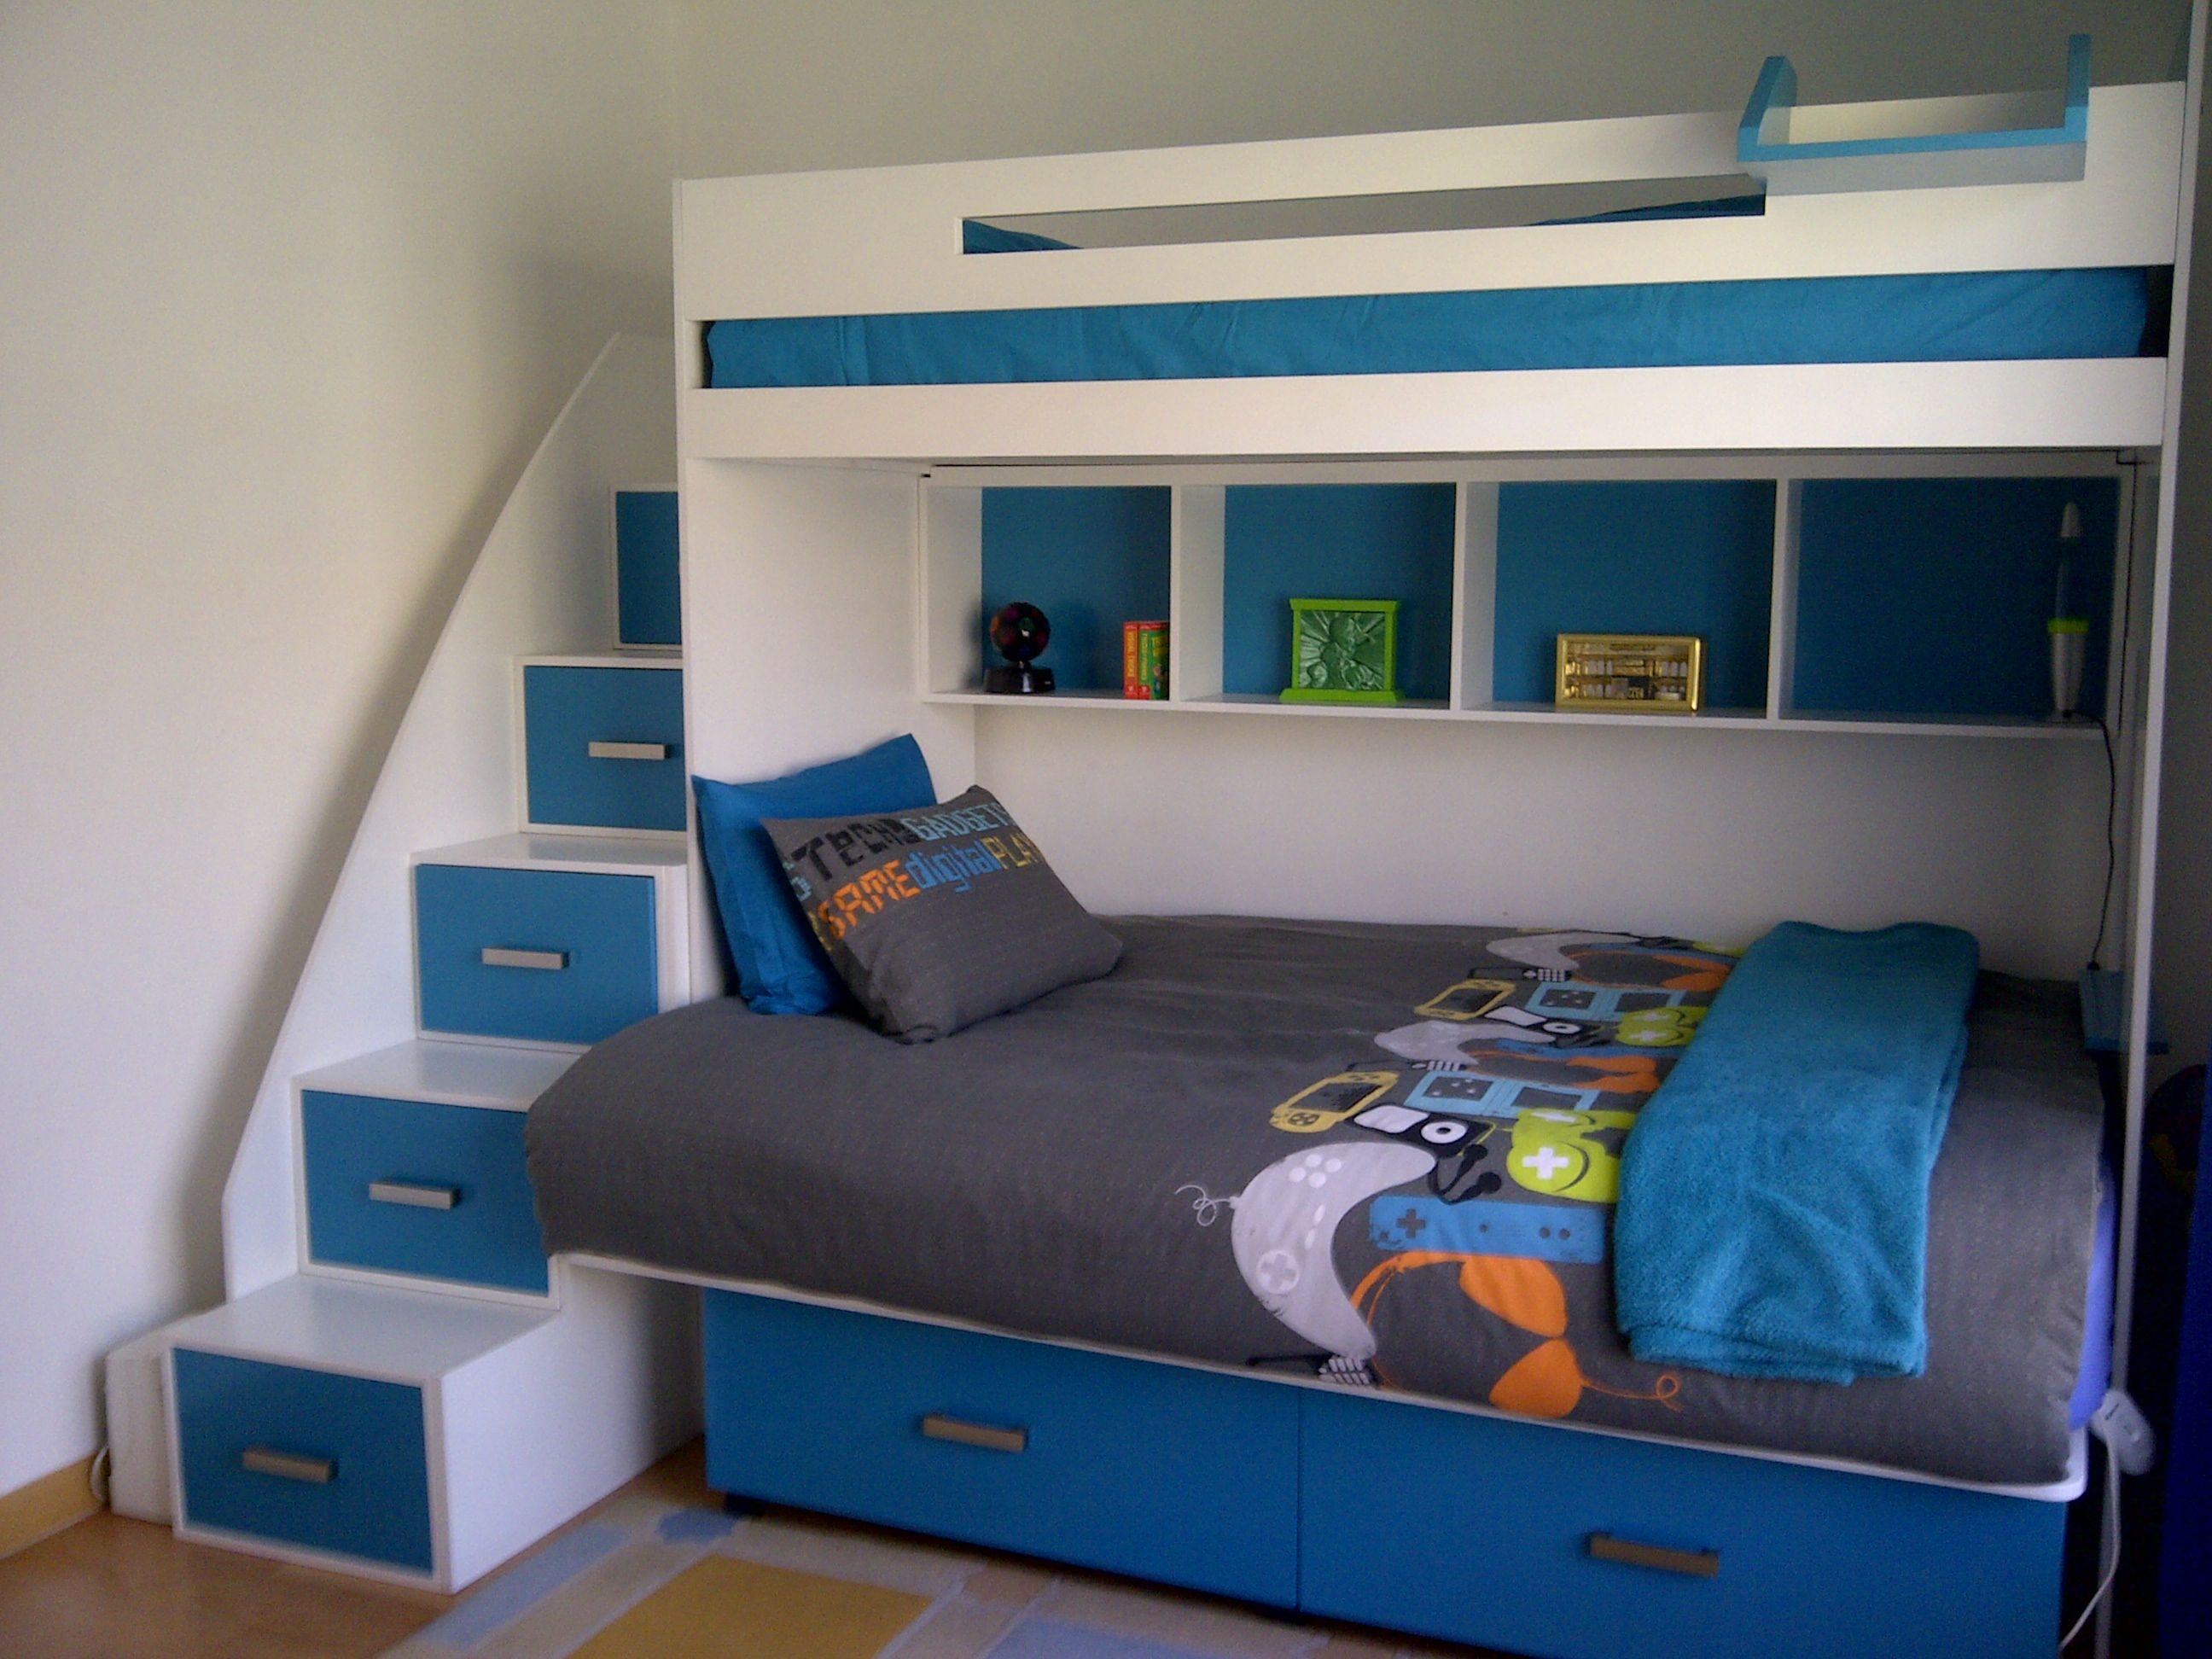 Bunk bed with stairs and storage - Galaxy Bunk Bed Double Lower Bunk With Storage Single Top Bunk Cubbies And